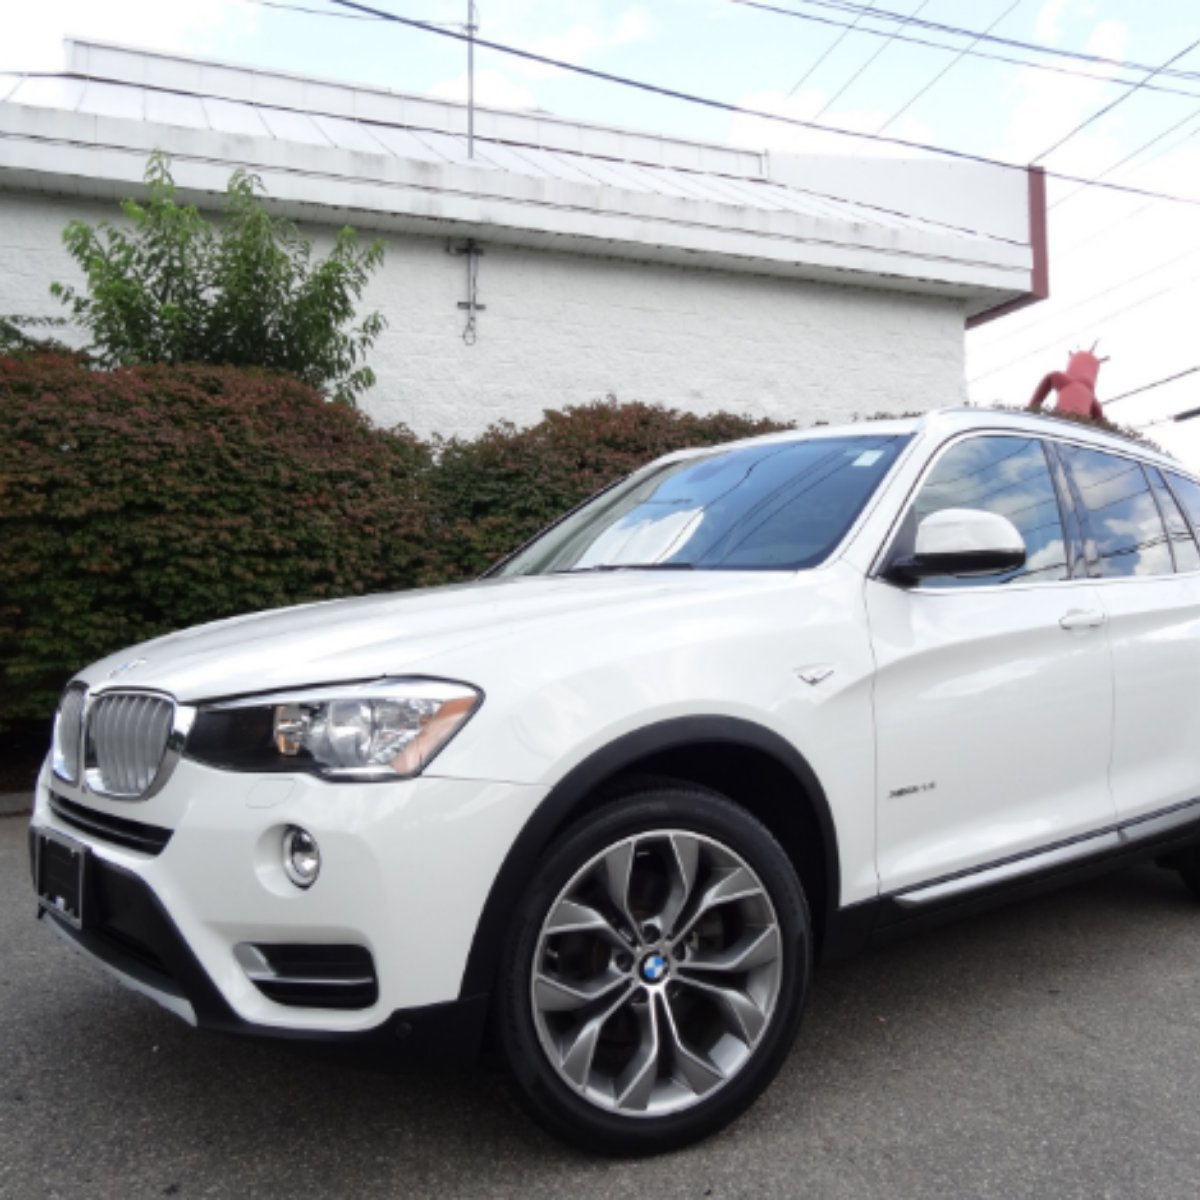 Foreign Motorcars Pre-Owned BMW Service & Sales